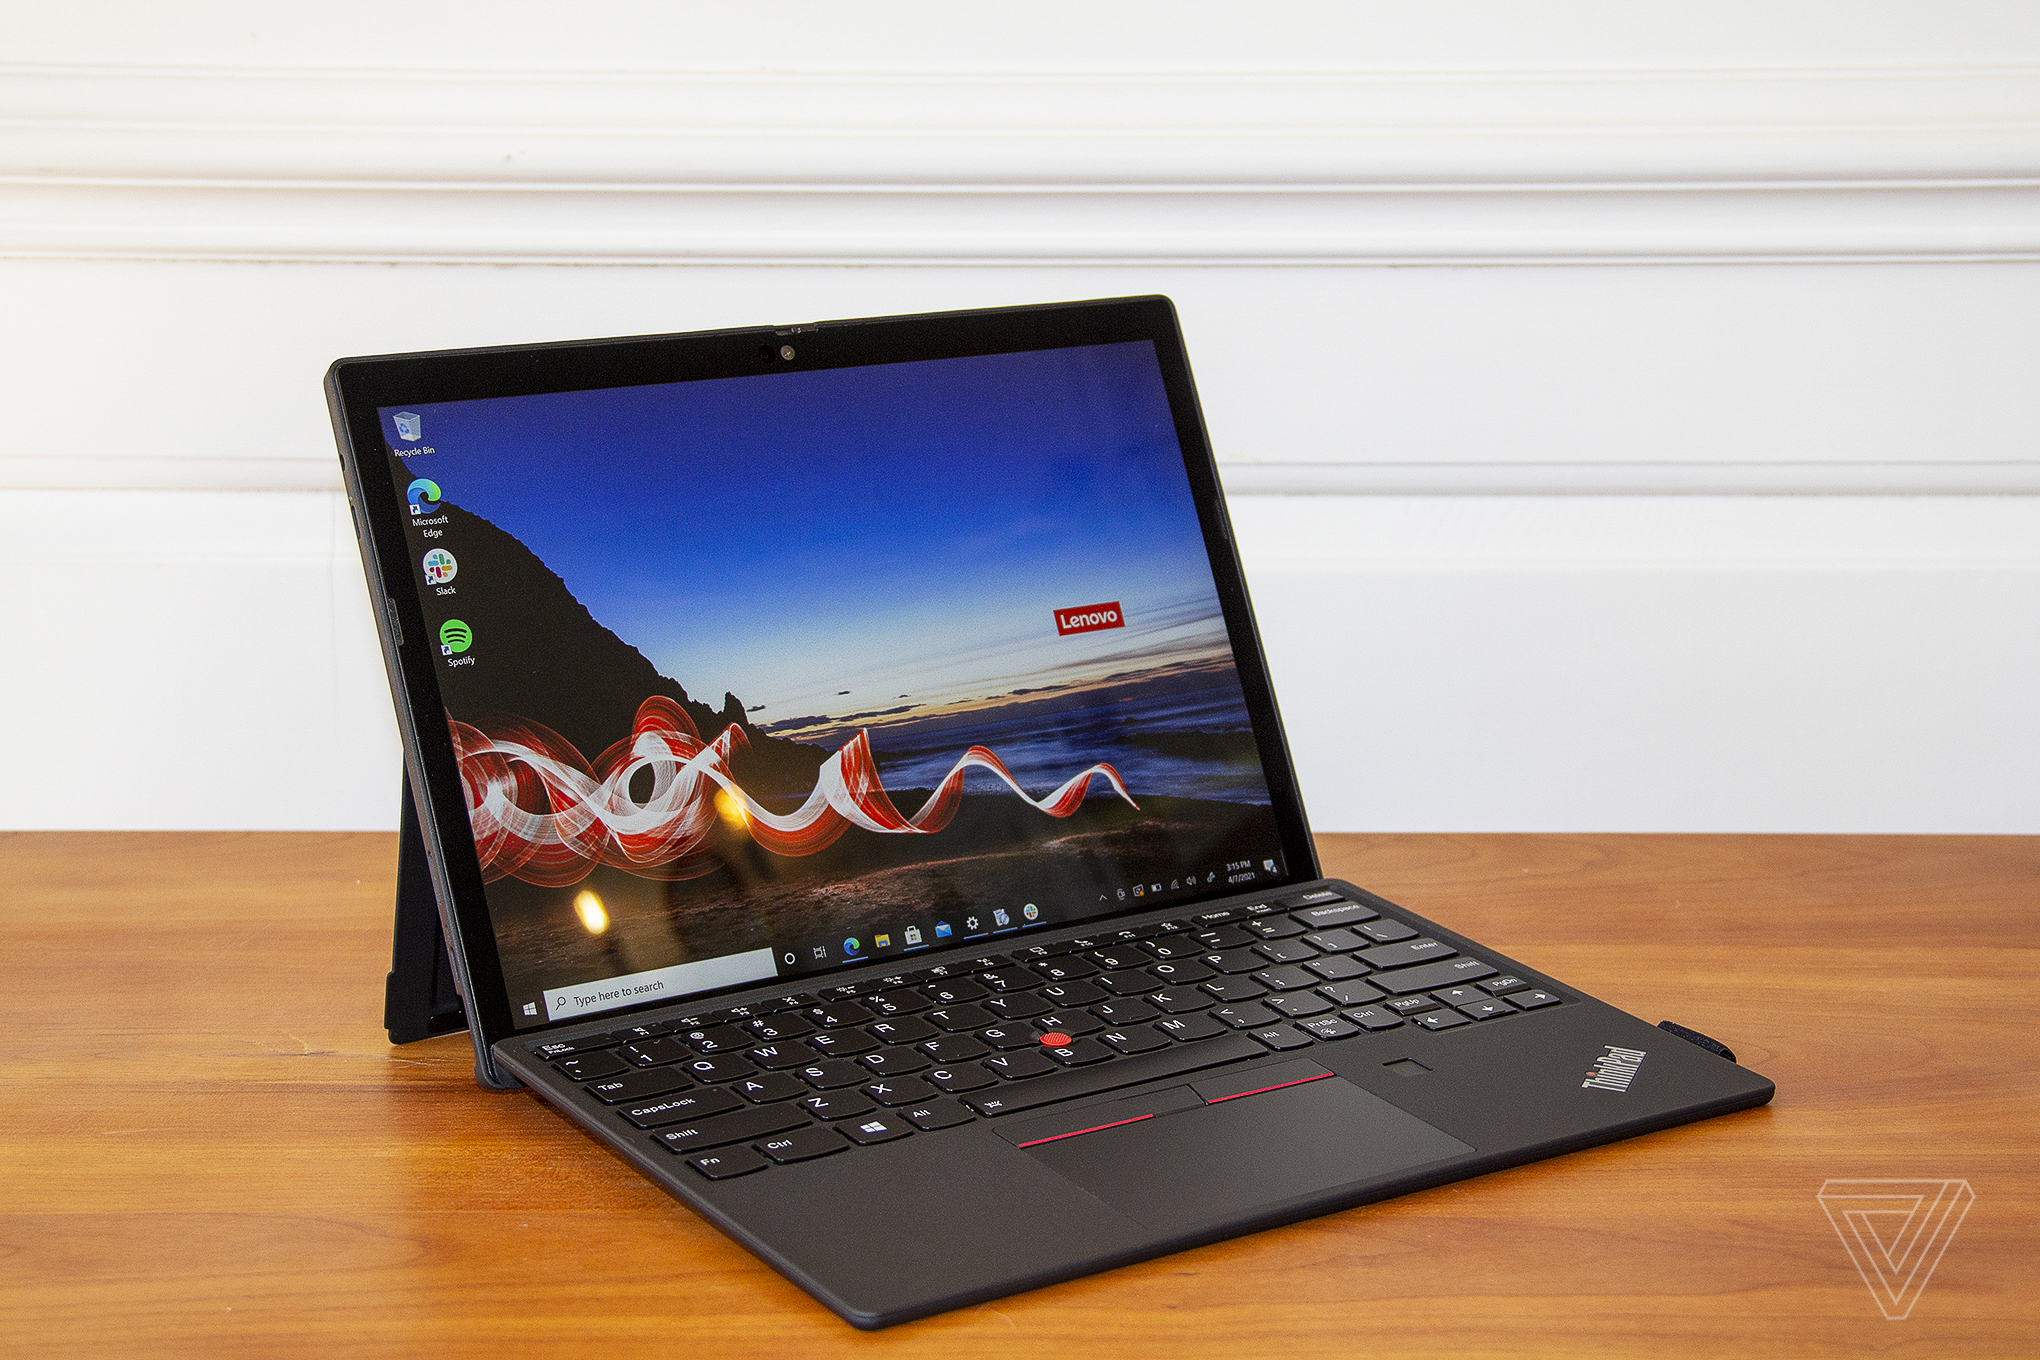 The ThinkPad X12 Detachable open from the front, angled to the right. The screen displays a beach with a red ribbon across it and the Lenovo logo on the horizon.